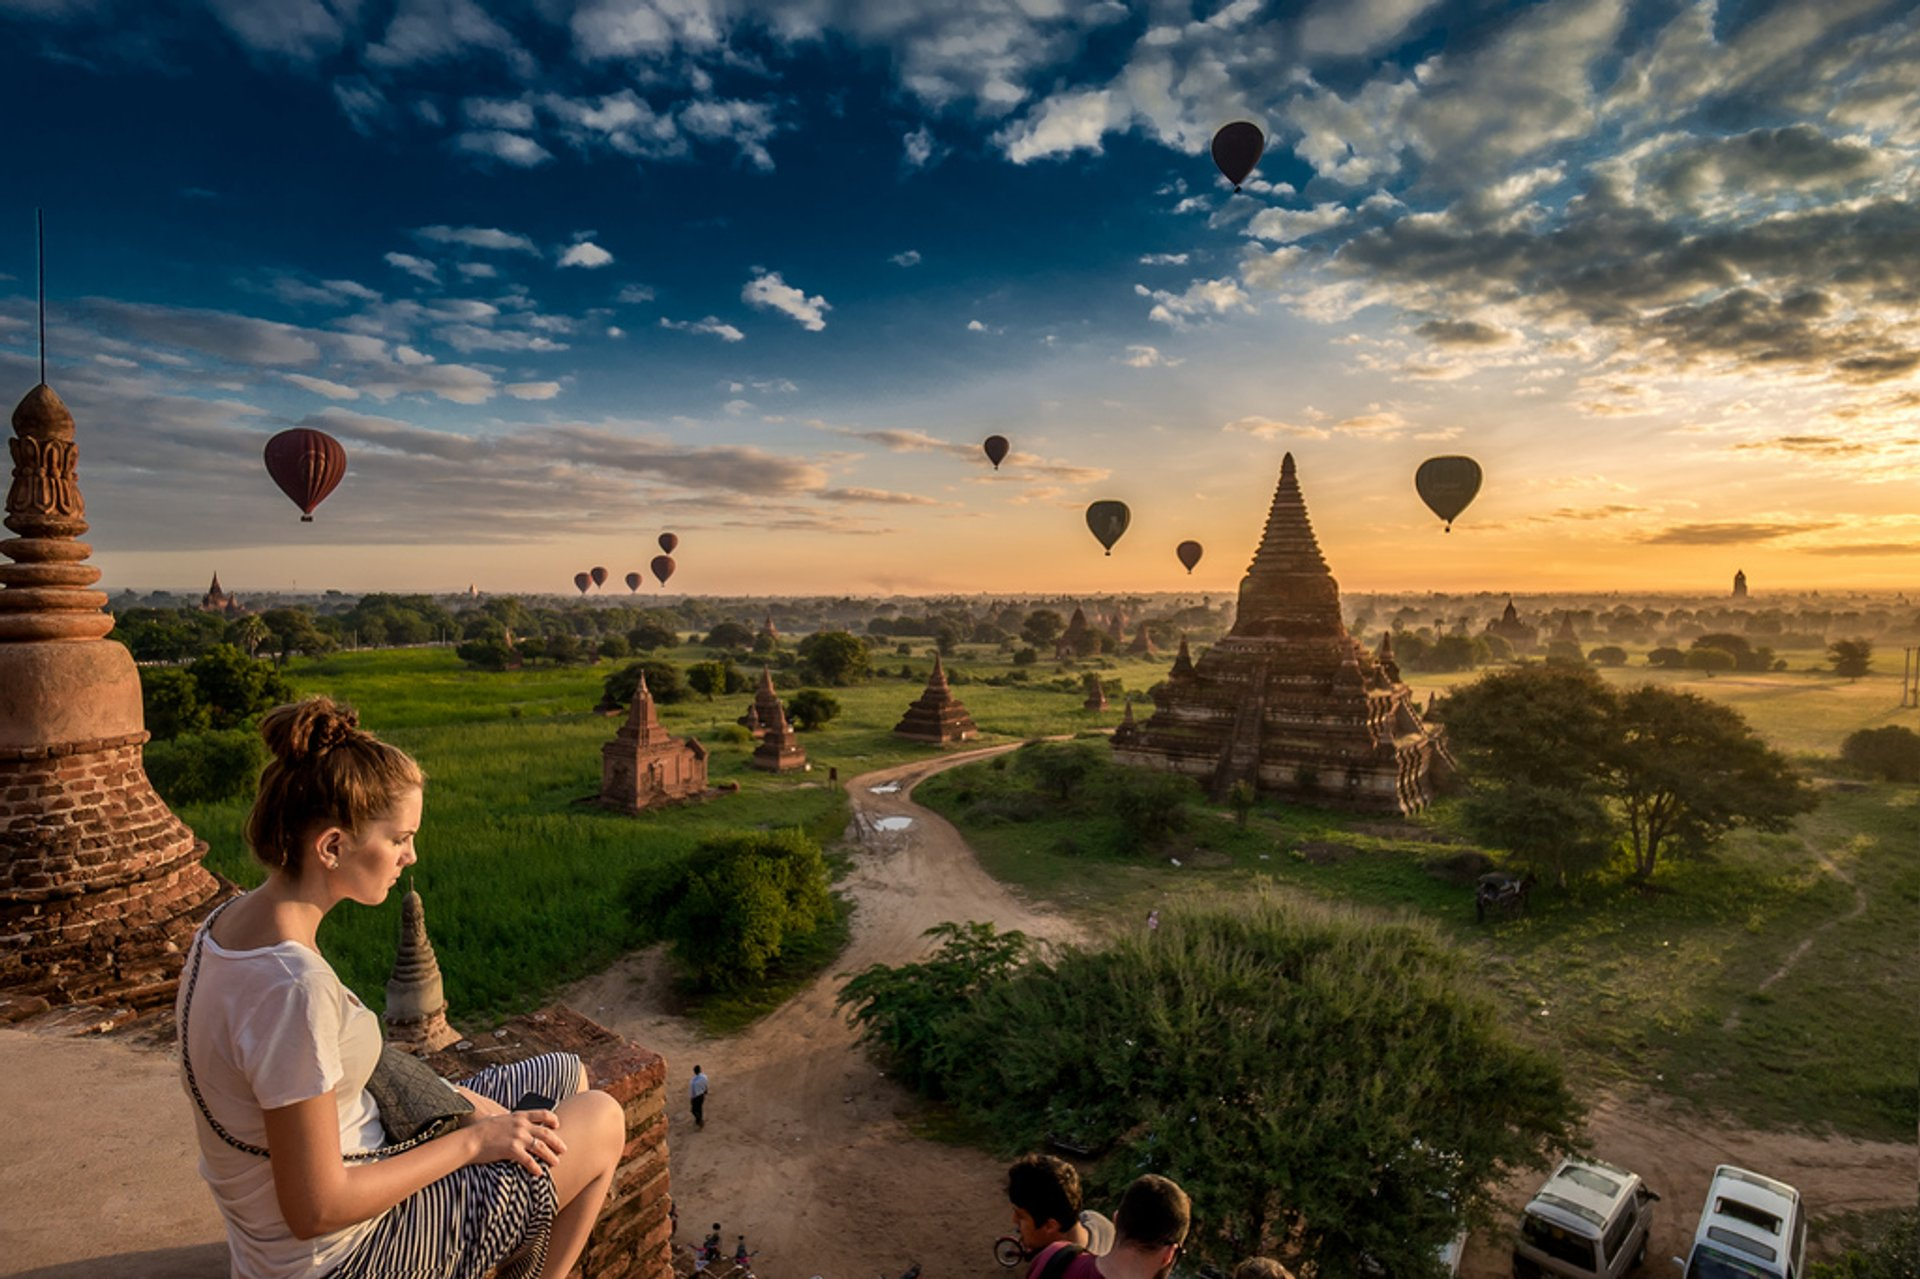 Air Ballooning over Bagan in Myanmar 2020 - Best Time